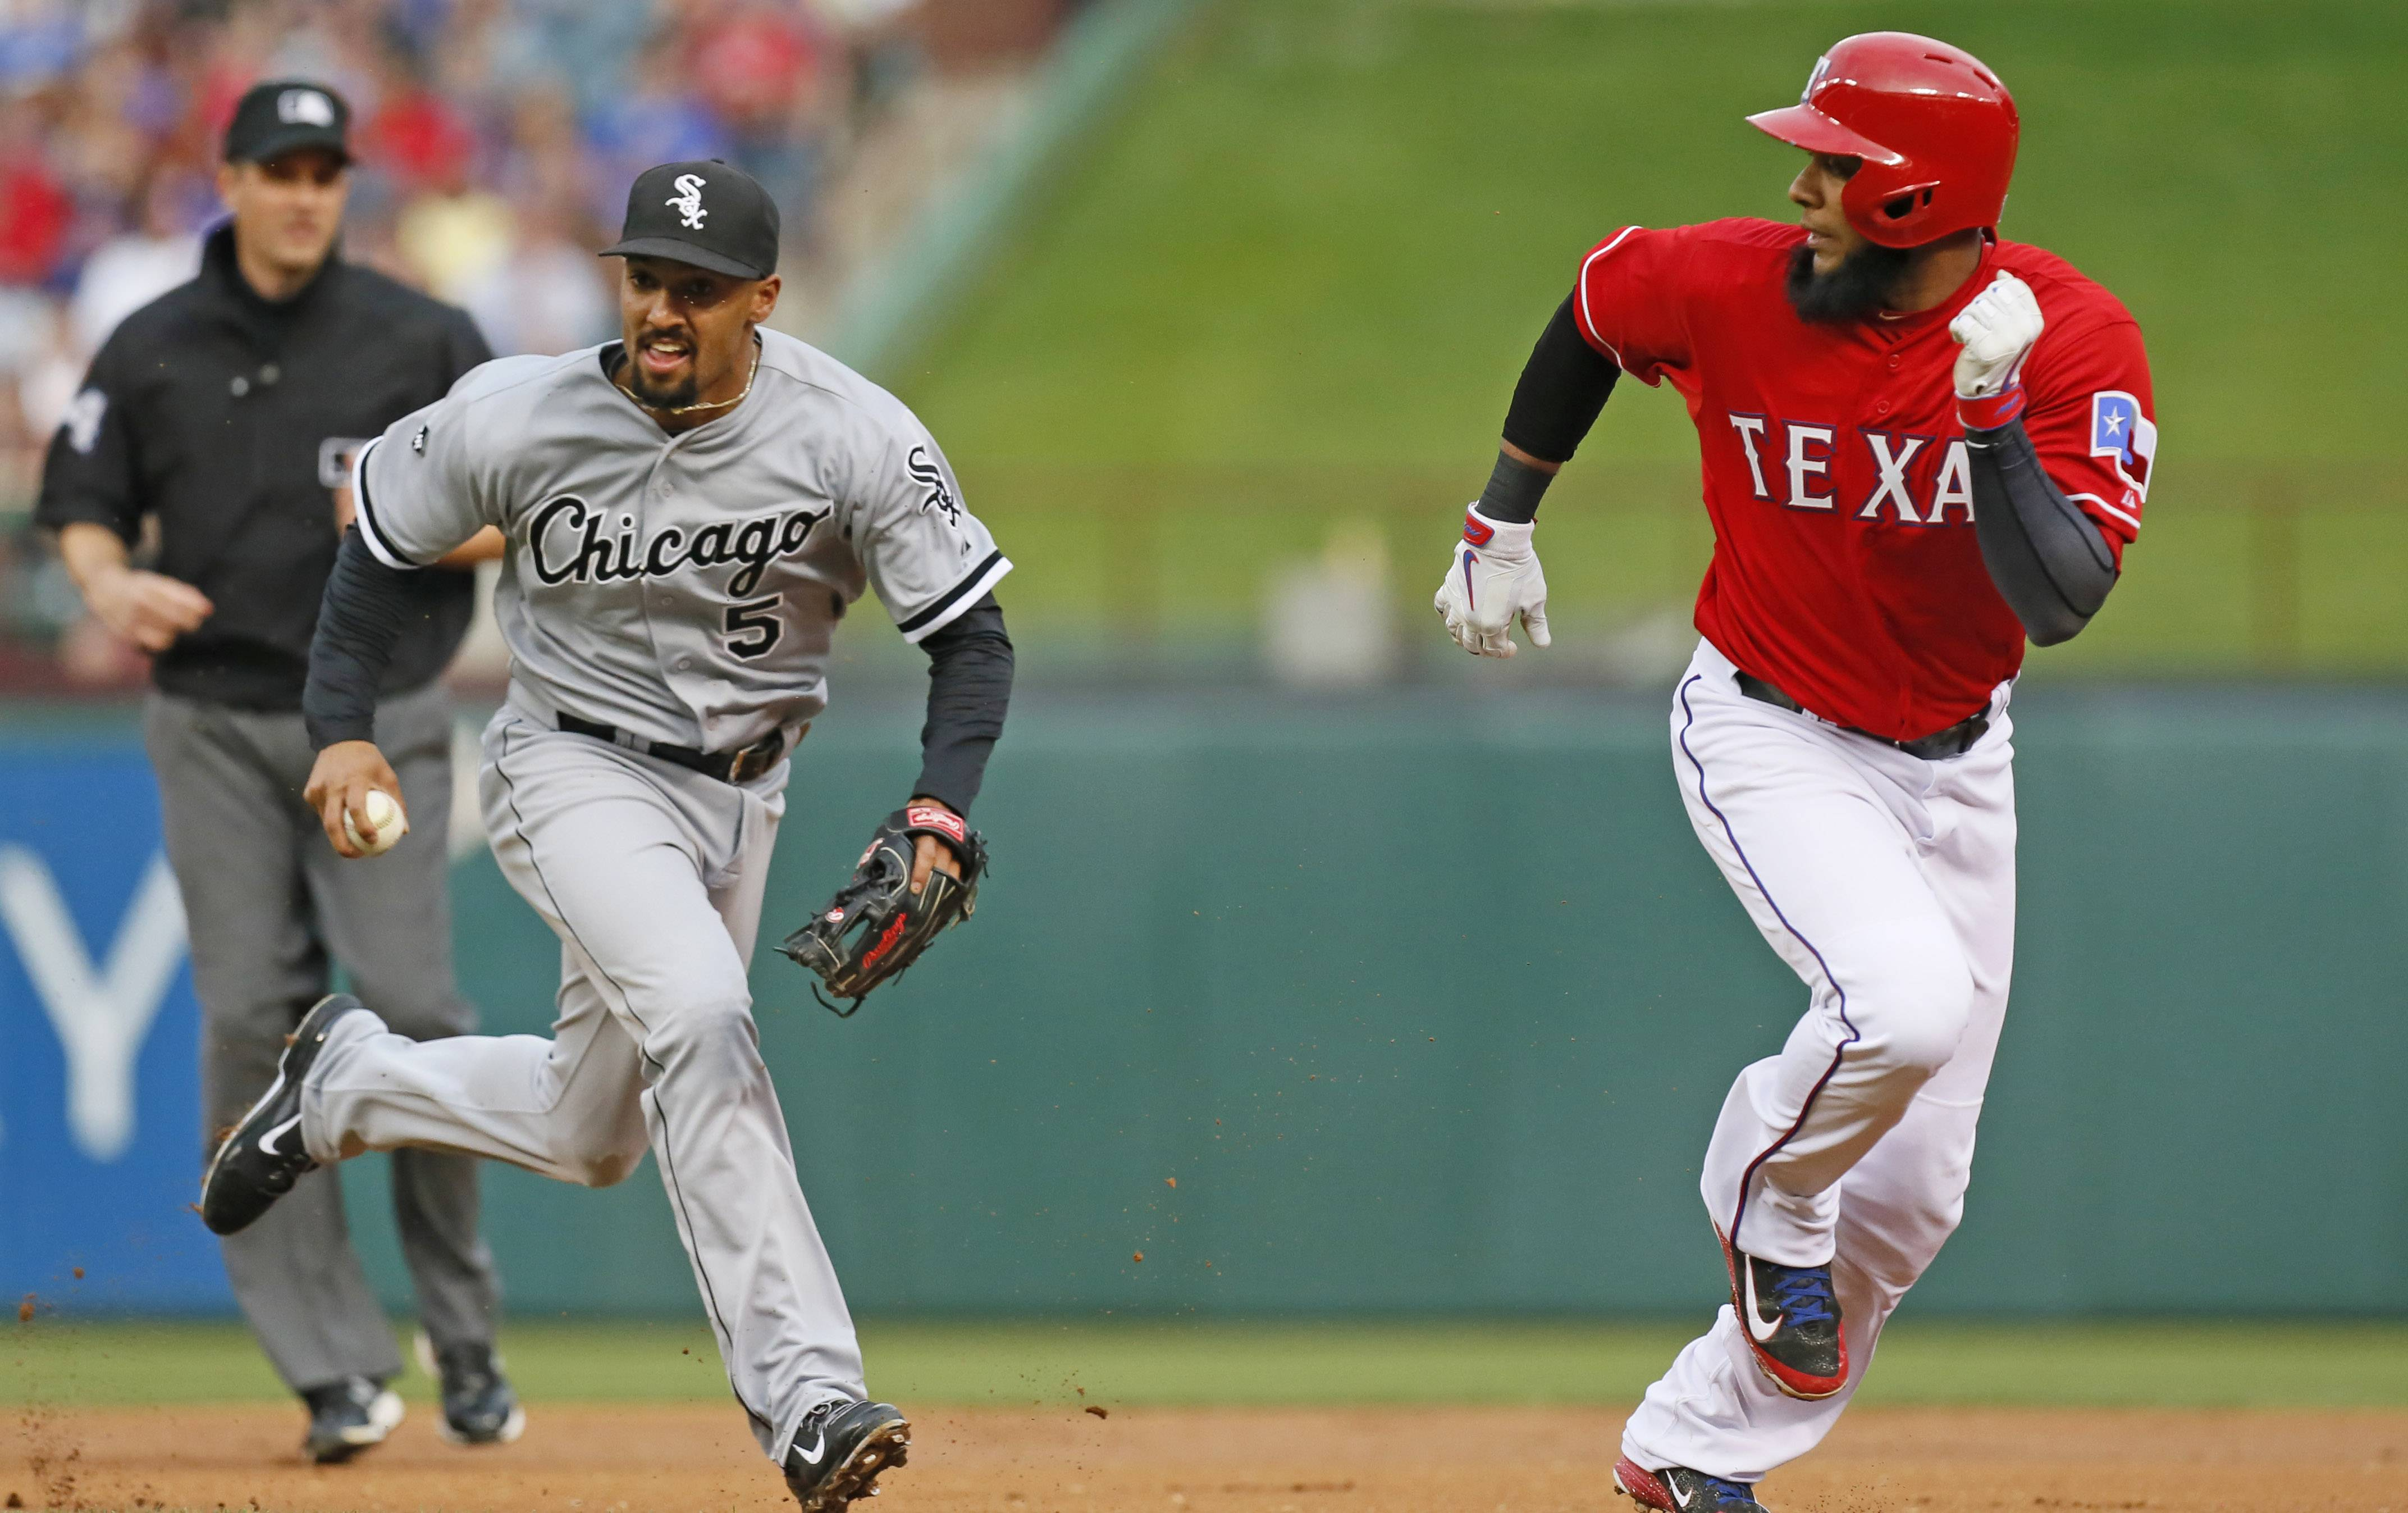 Texas Rangers' Elvis Andrus, right, gets caught in a rundown between first and second base as White Sox second baseman Marcus Semien (5) closes in during Saturday's game in Texas. The Sox lost 6-3.